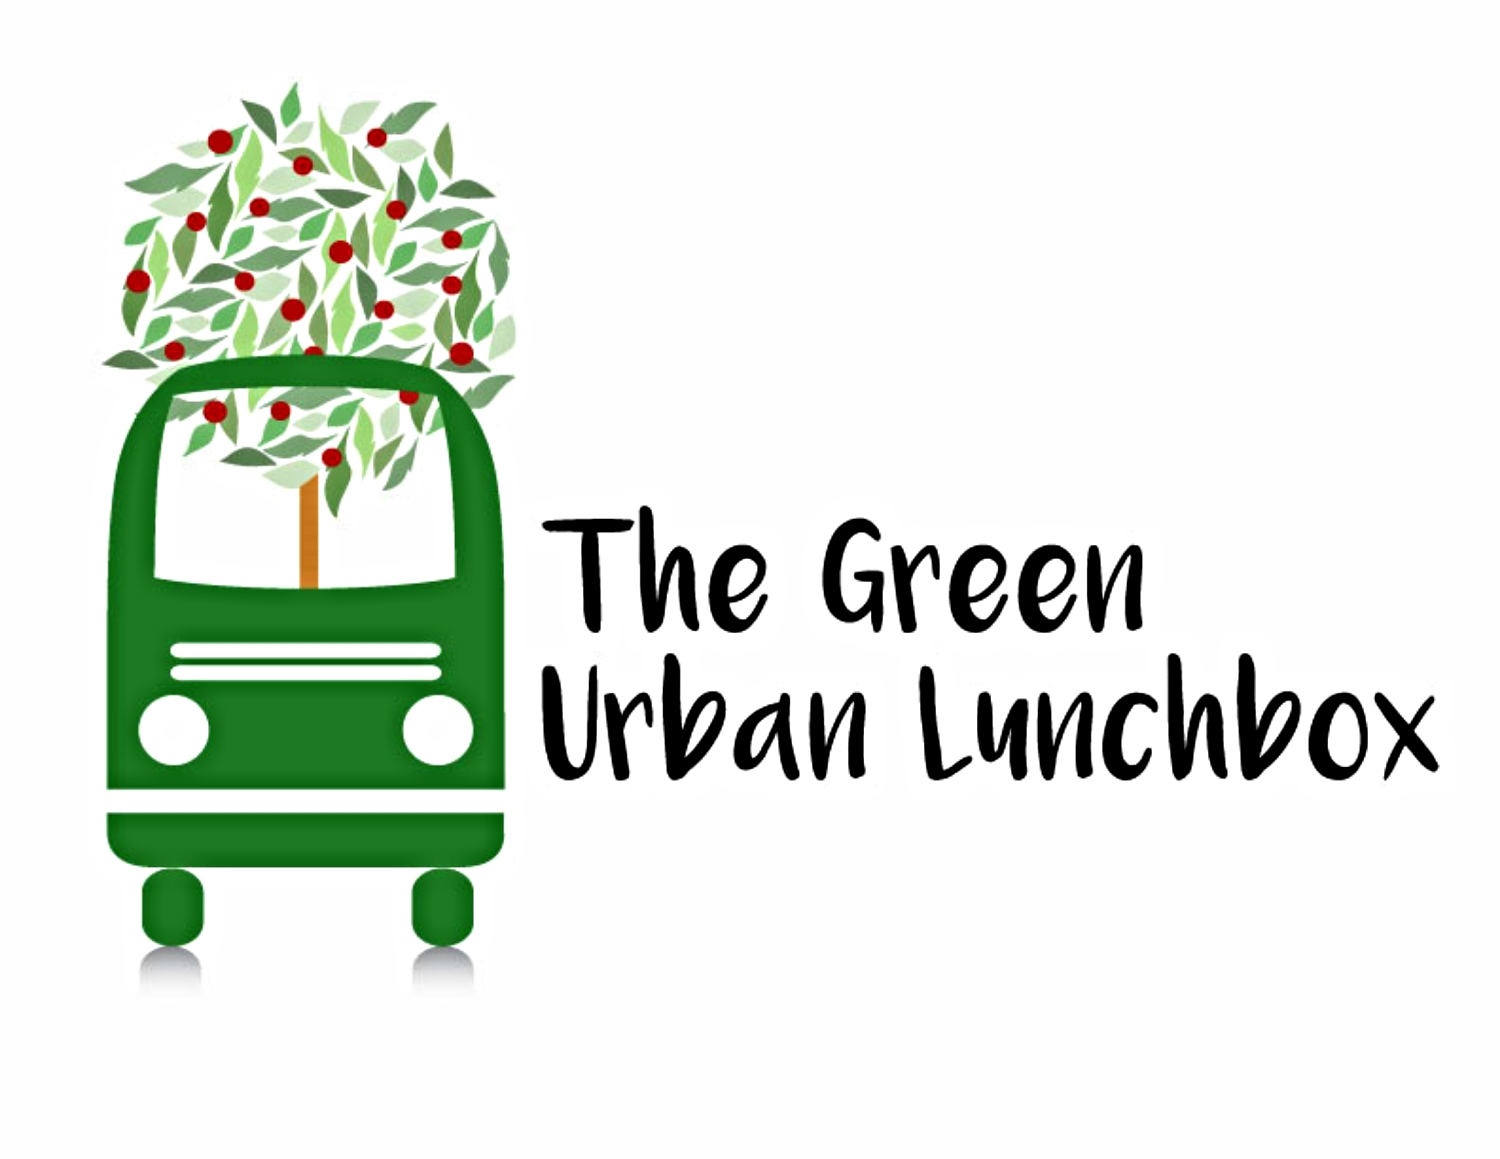 The Green Urban Lunch Box